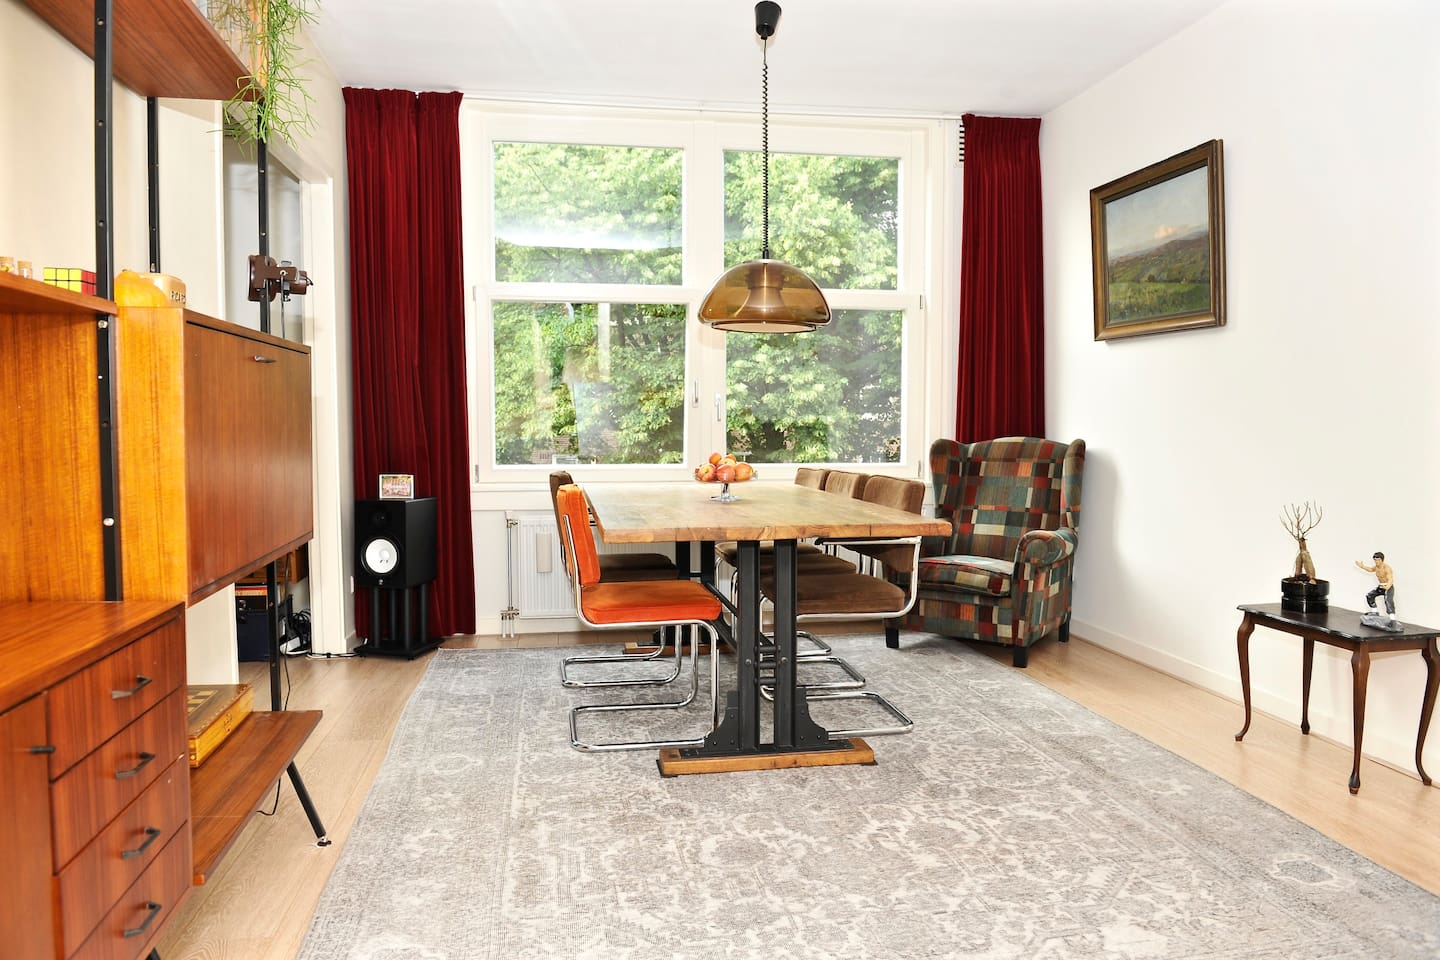 Lovely living room with diner table and just around the corner great couch